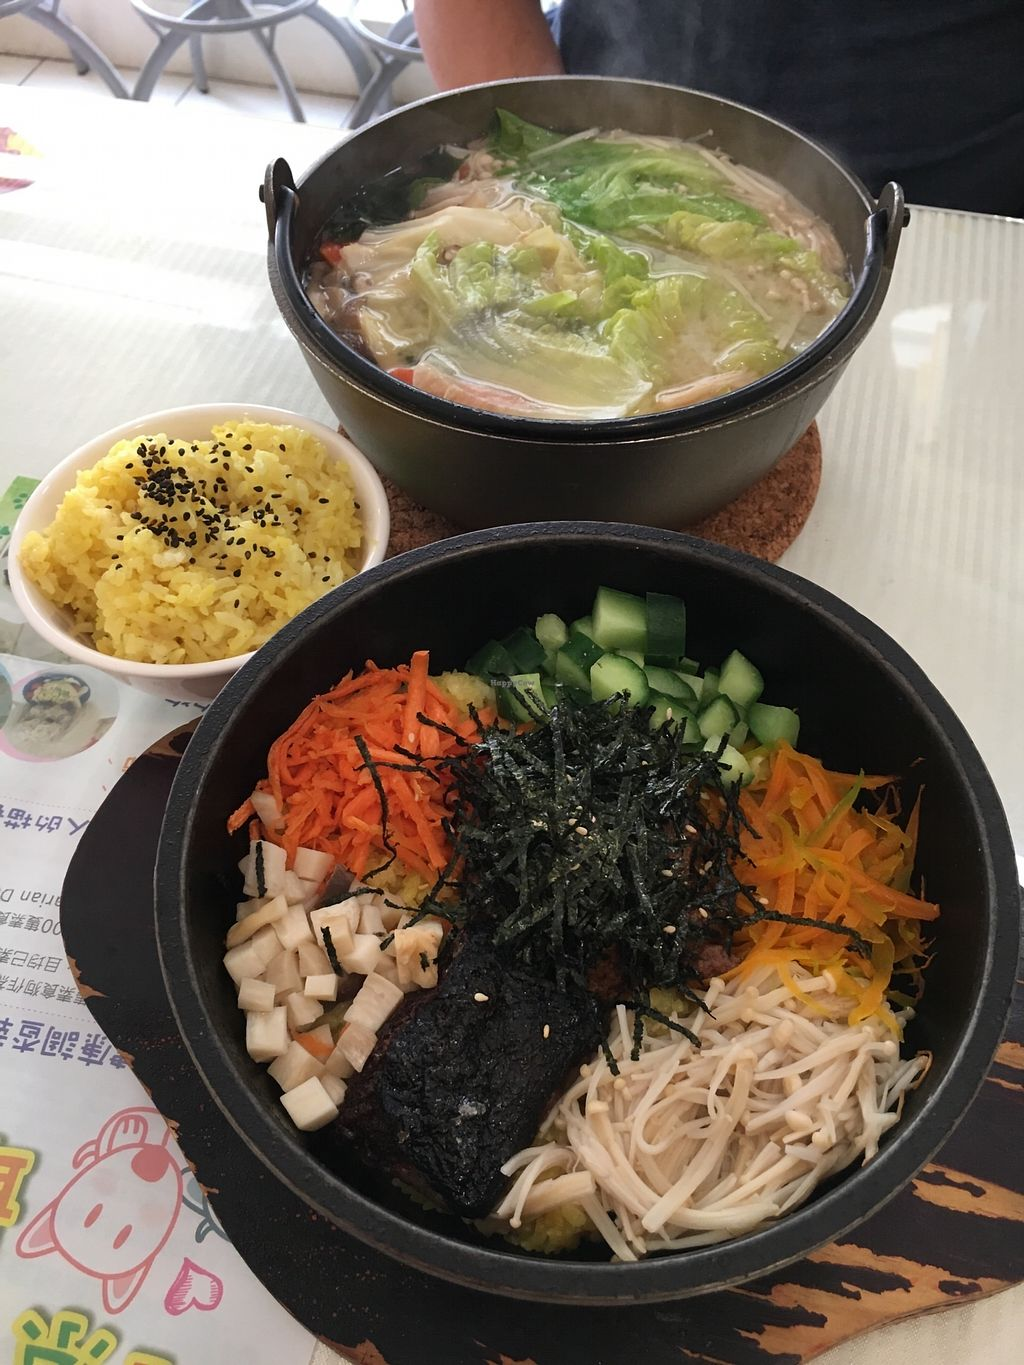 """Photo of Loving Hut - QingZhong St  by <a href=""""/members/profile/sousuneautrelentille"""">sousuneautrelentille</a> <br/>Taiwanese bi bim bap (bottom), miso hot pot (top), and rice <br/> February 26, 2018  - <a href='/contact/abuse/image/32419/364019'>Report</a>"""